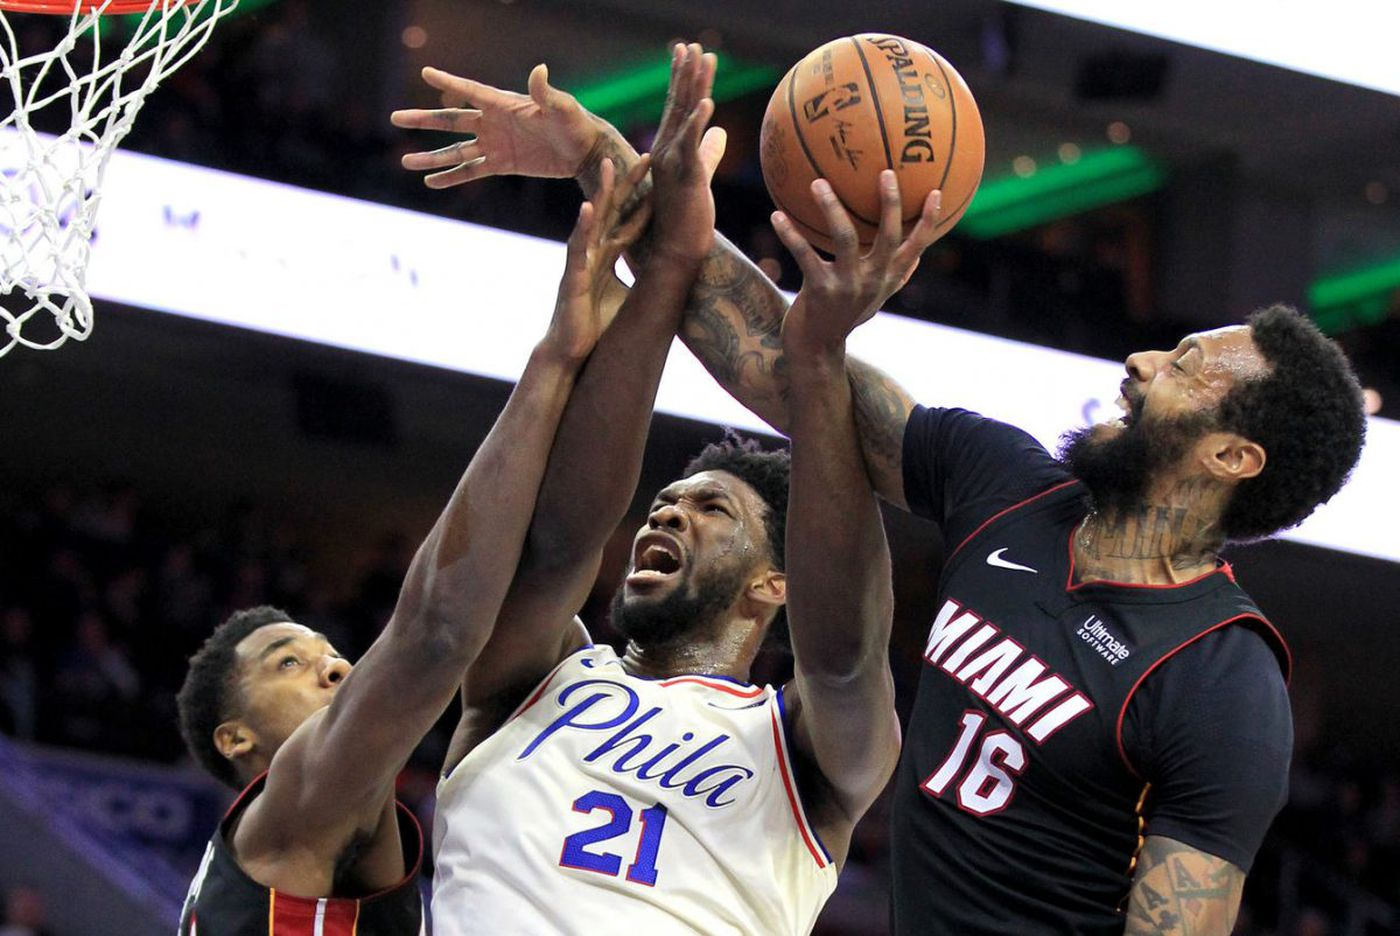 Sixers hold on to win 103-97 on a night they honored the Eagles